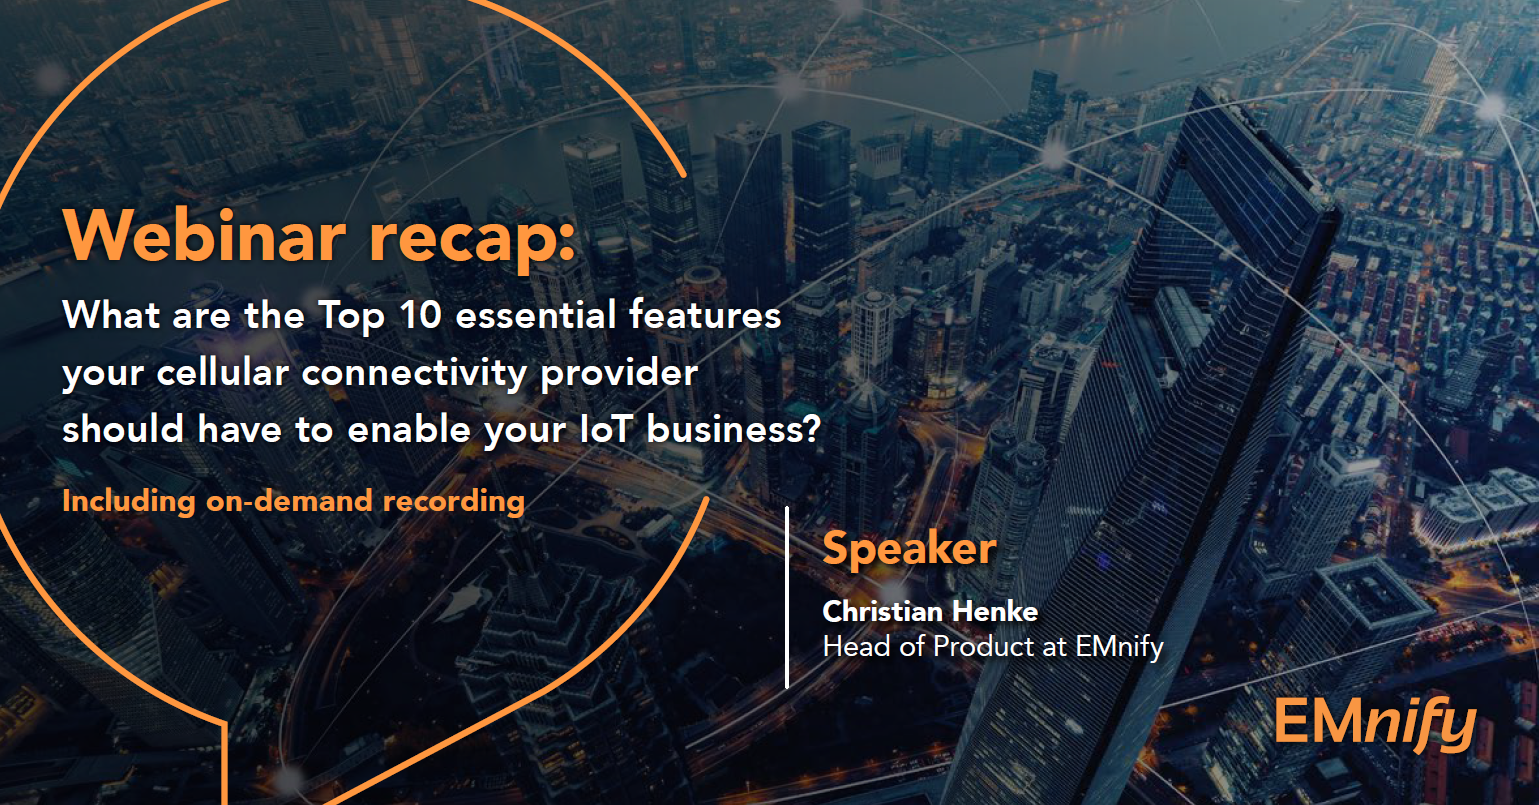 Webinar recap: What are the Top 10 essential features your cellular connectivity provider should have to enable your IoT business?